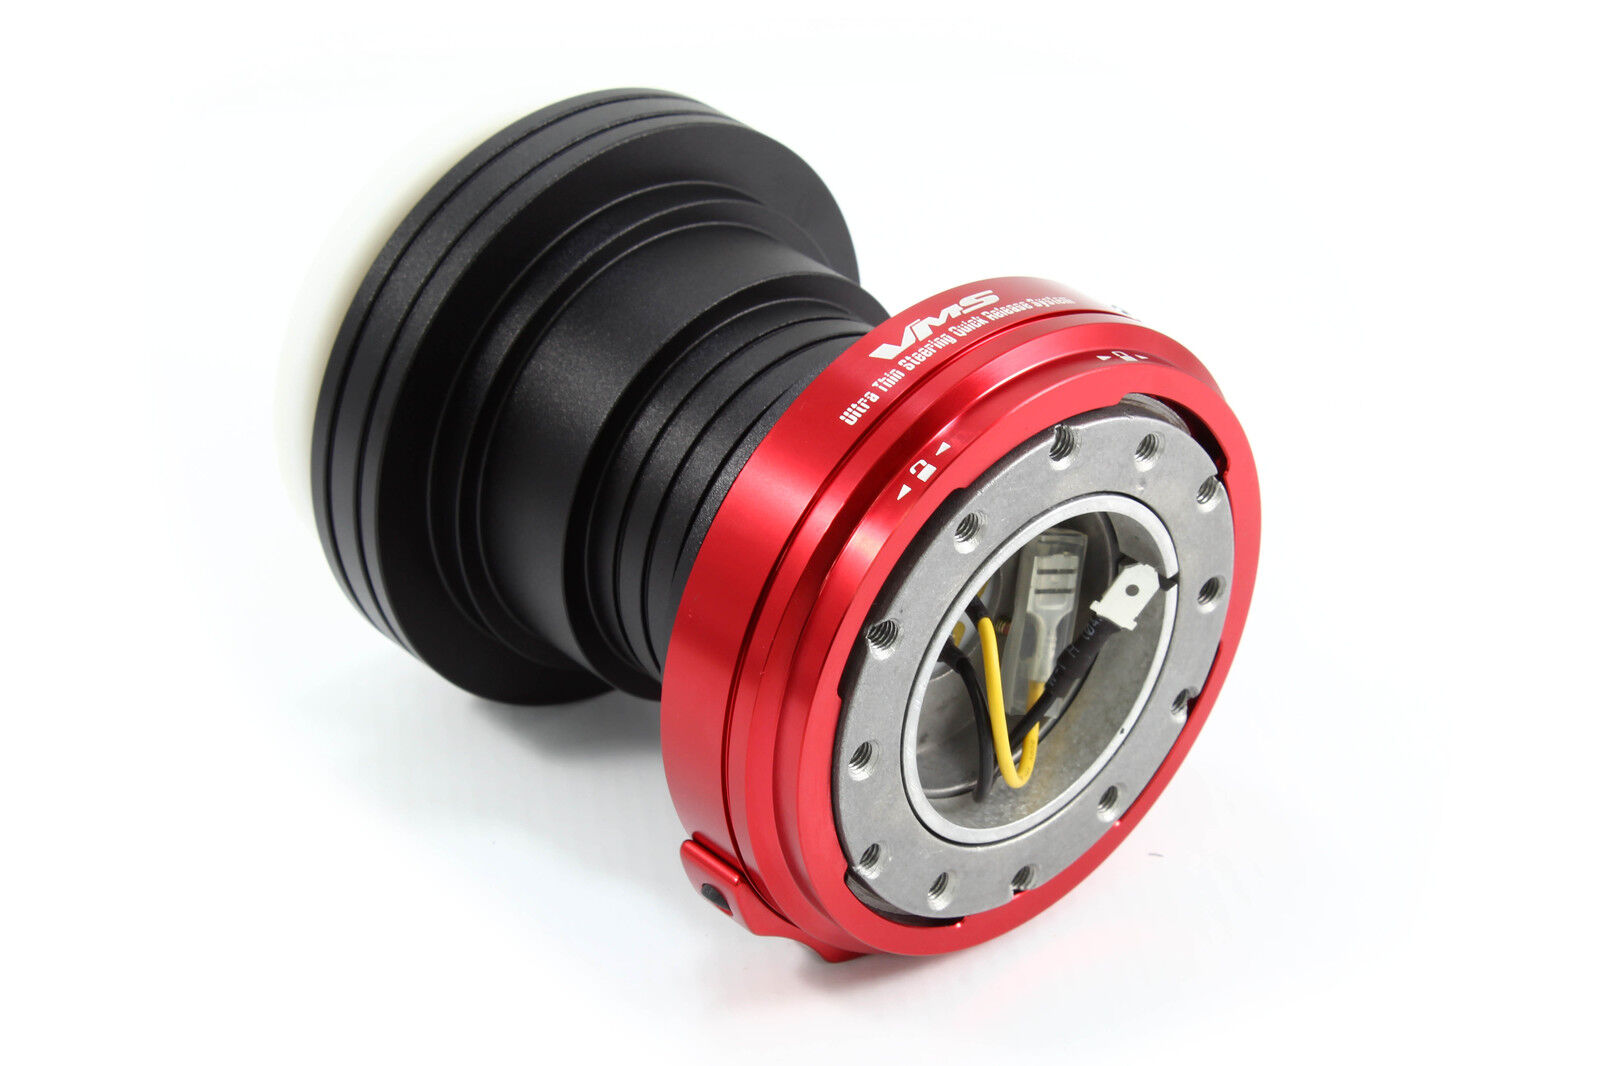 VMS Racing 92 95 Honda Civic Steering Wheel Hub Red Quick Release Combo Black